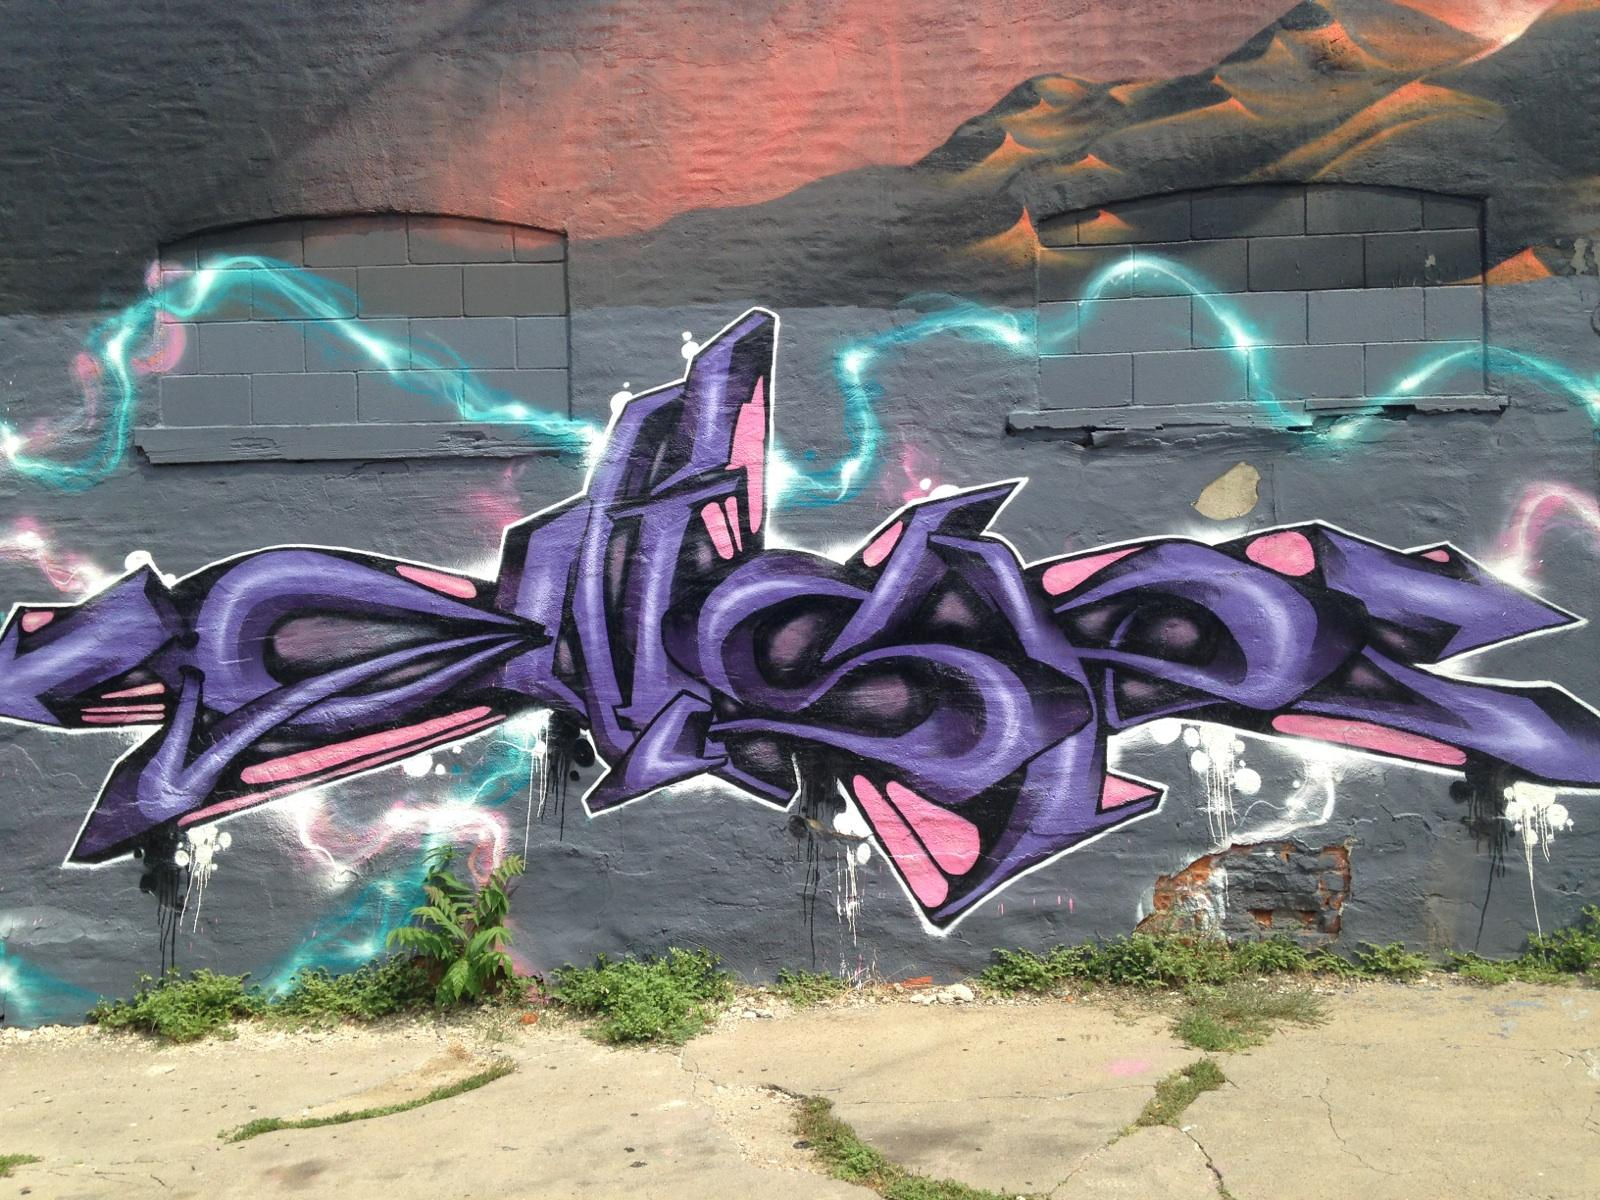 This Work By Graffiti Writer And Street Artist Gear Is At The Mercy Seat Tattoo And Art Gallery At 210 E 16Th St Kansas City Mo